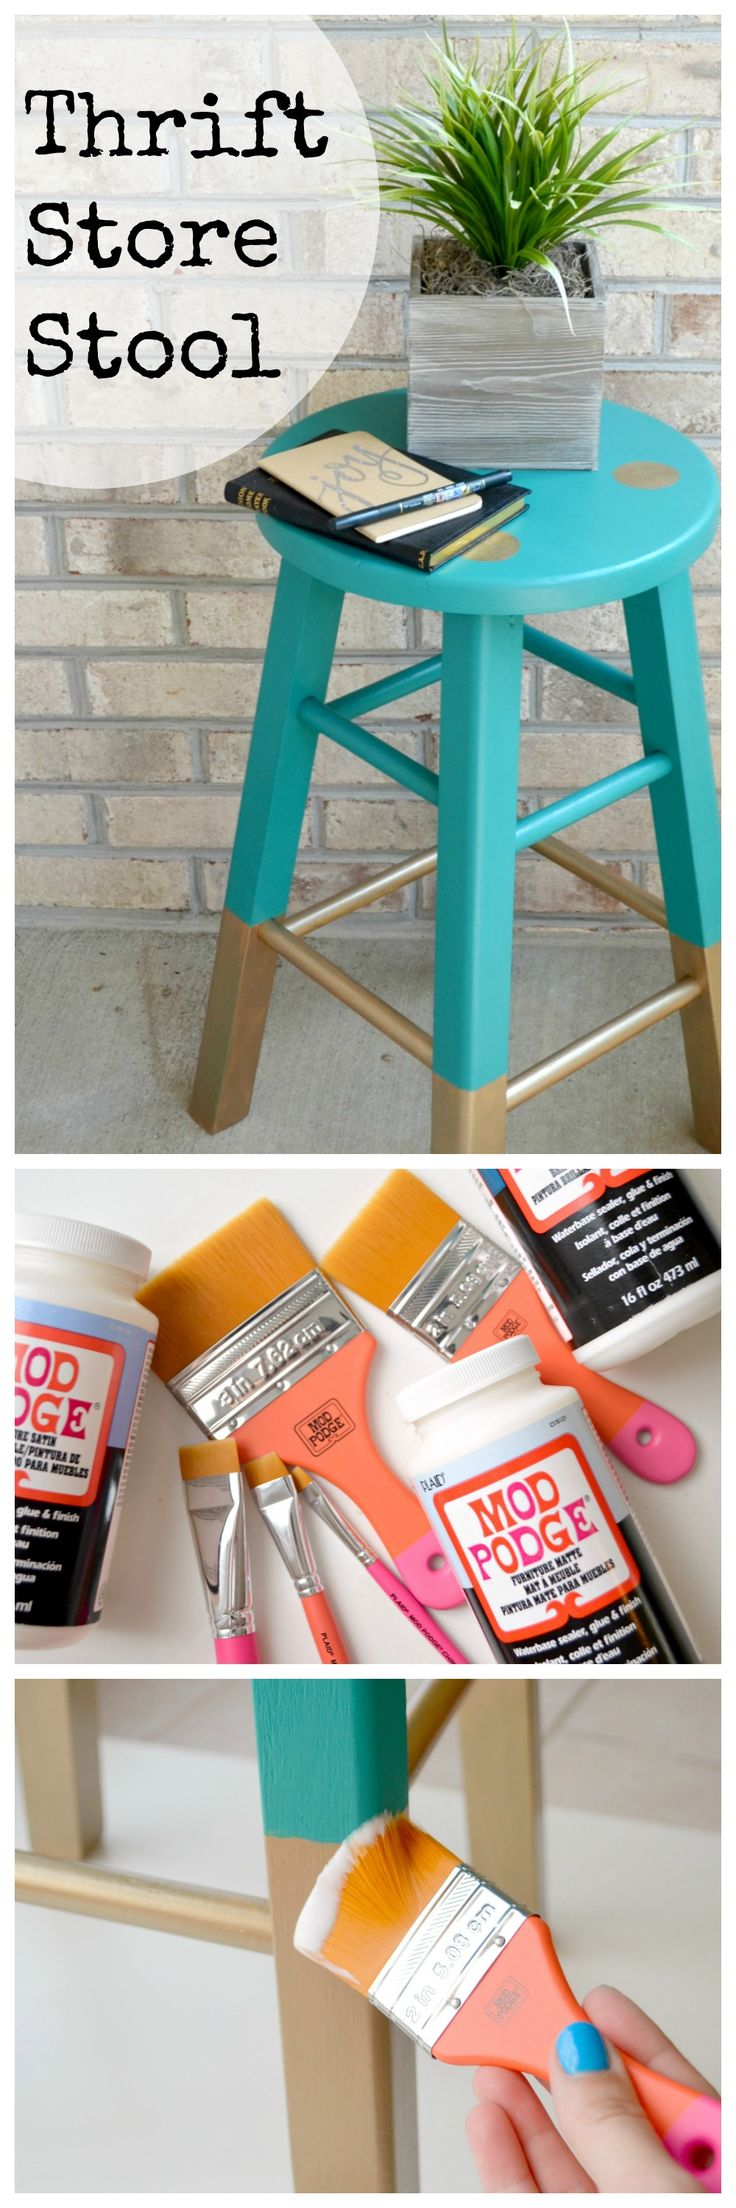 Thrift Store Challenge: Babanees Inspired Painted Stool with Mod Podge Furniture finishes. {sponsored} @plaidcrafts